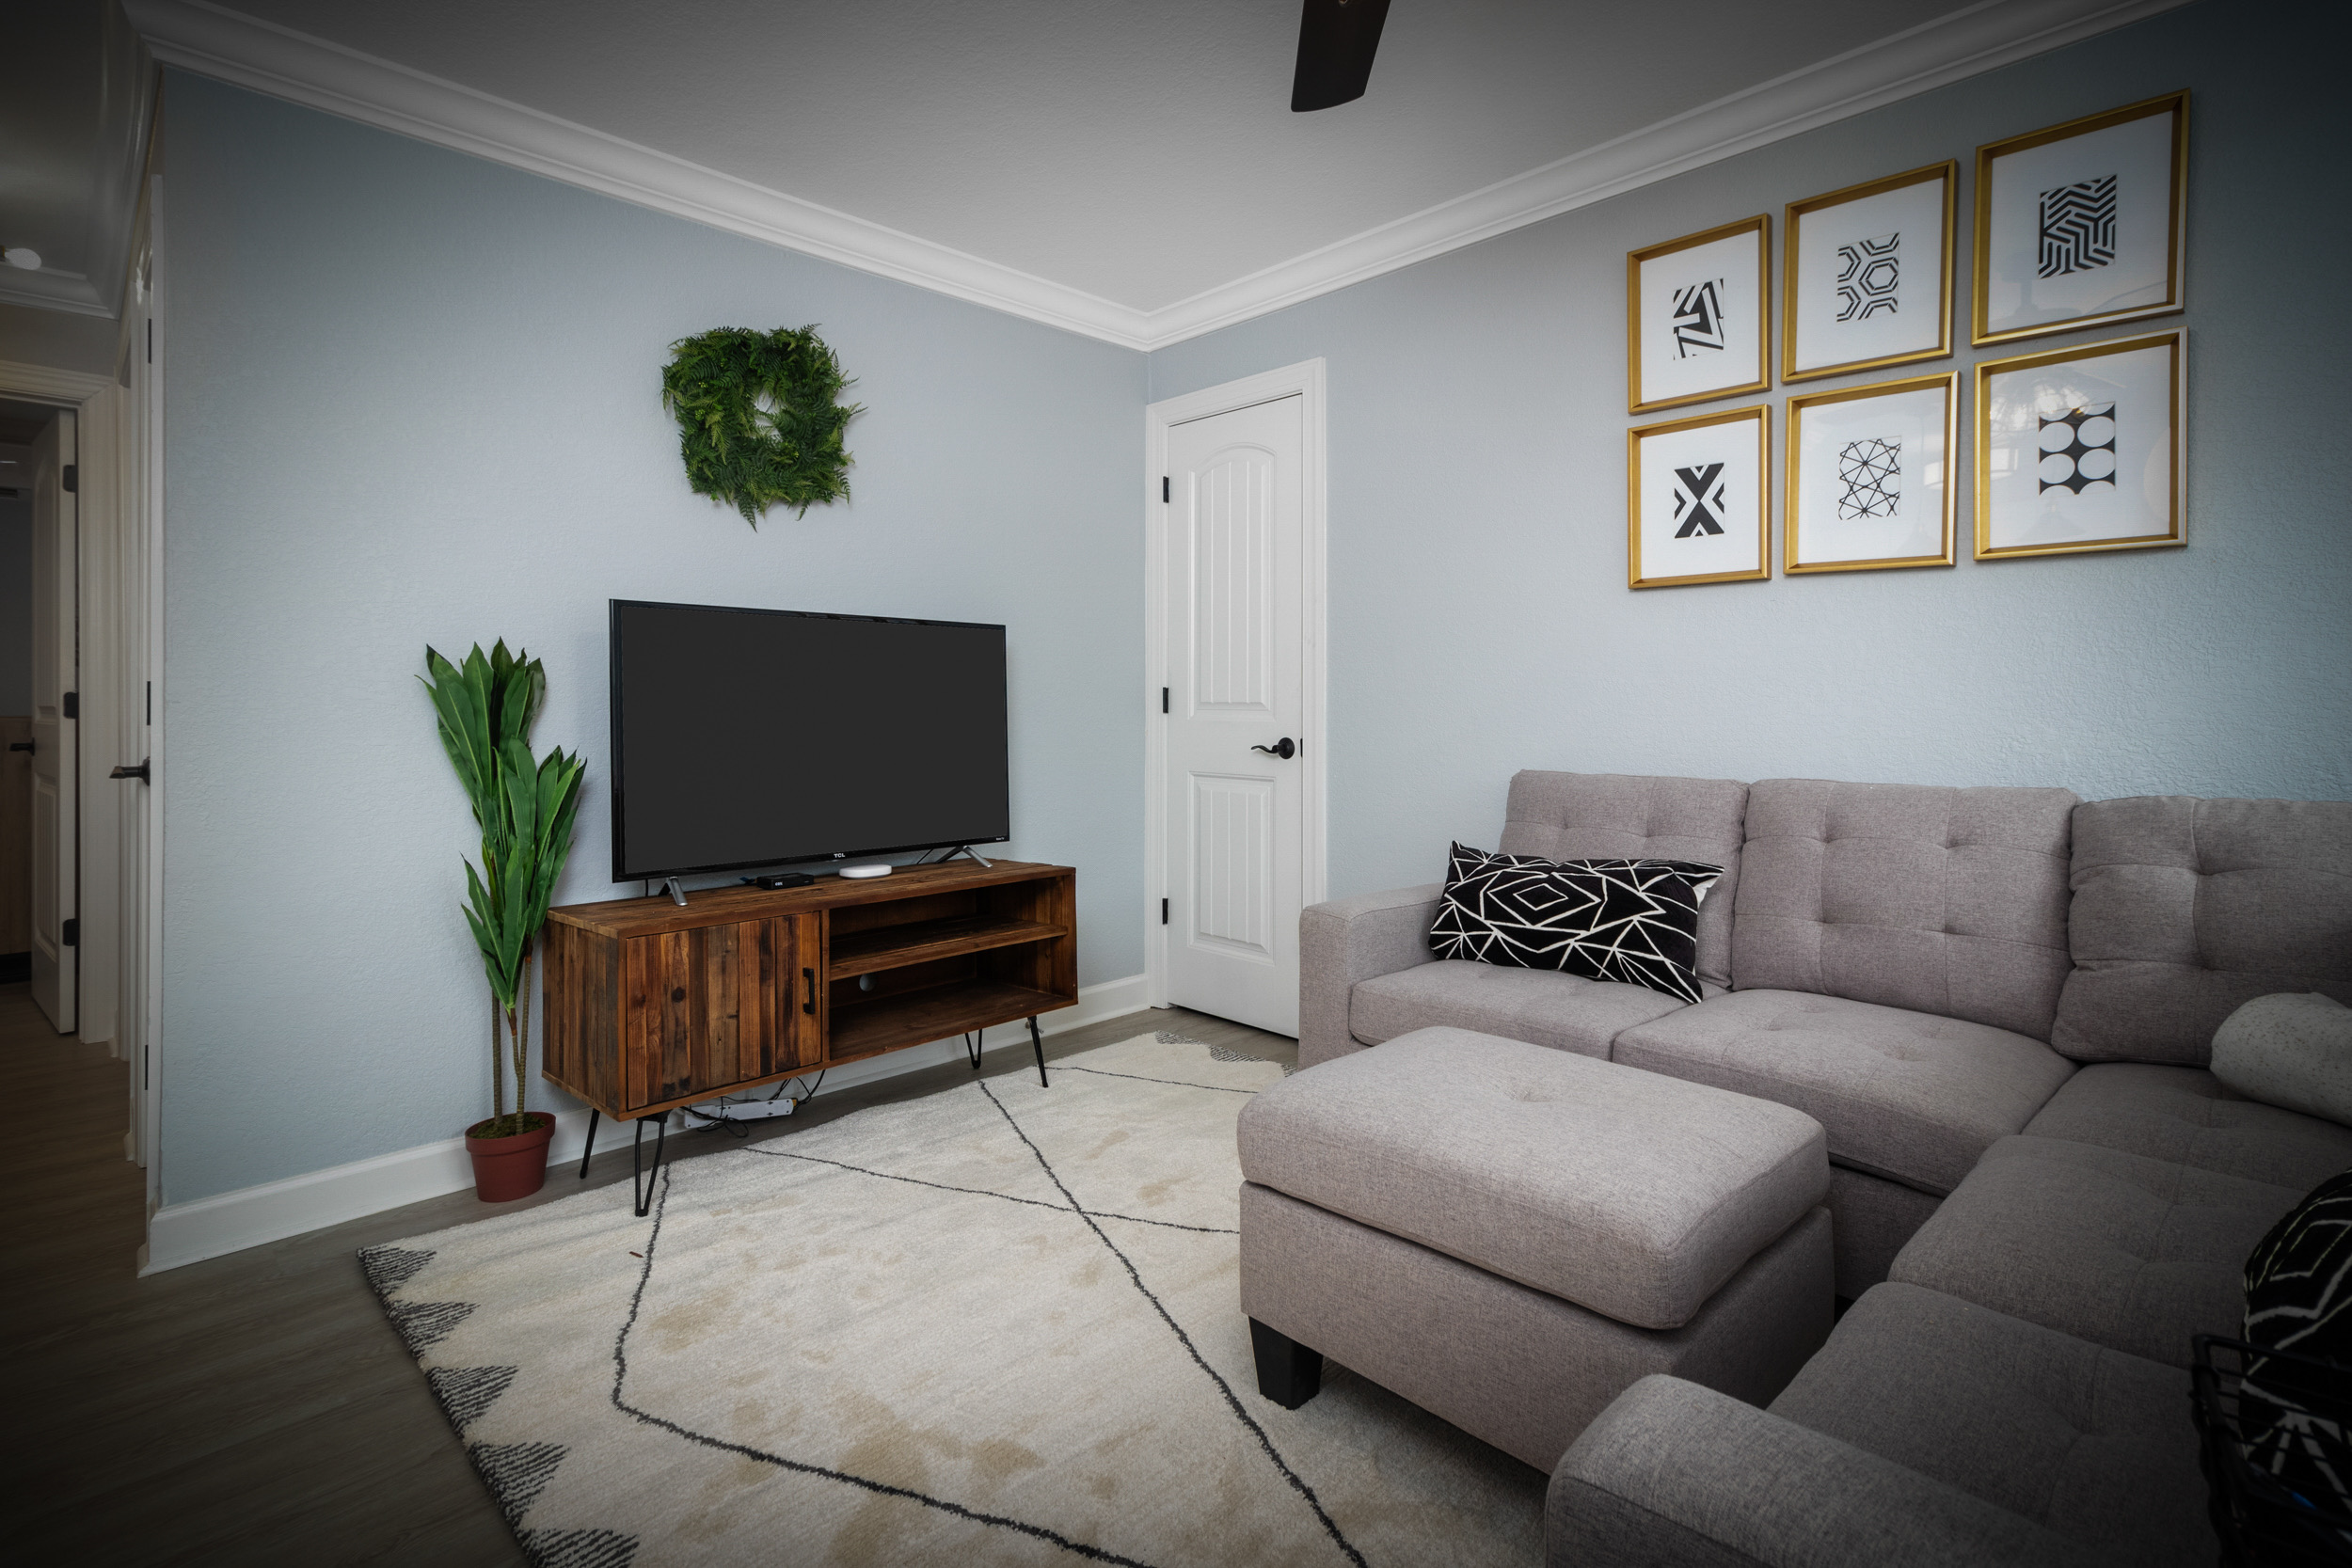 living room with a grey couch and green wreath hanging on the wall